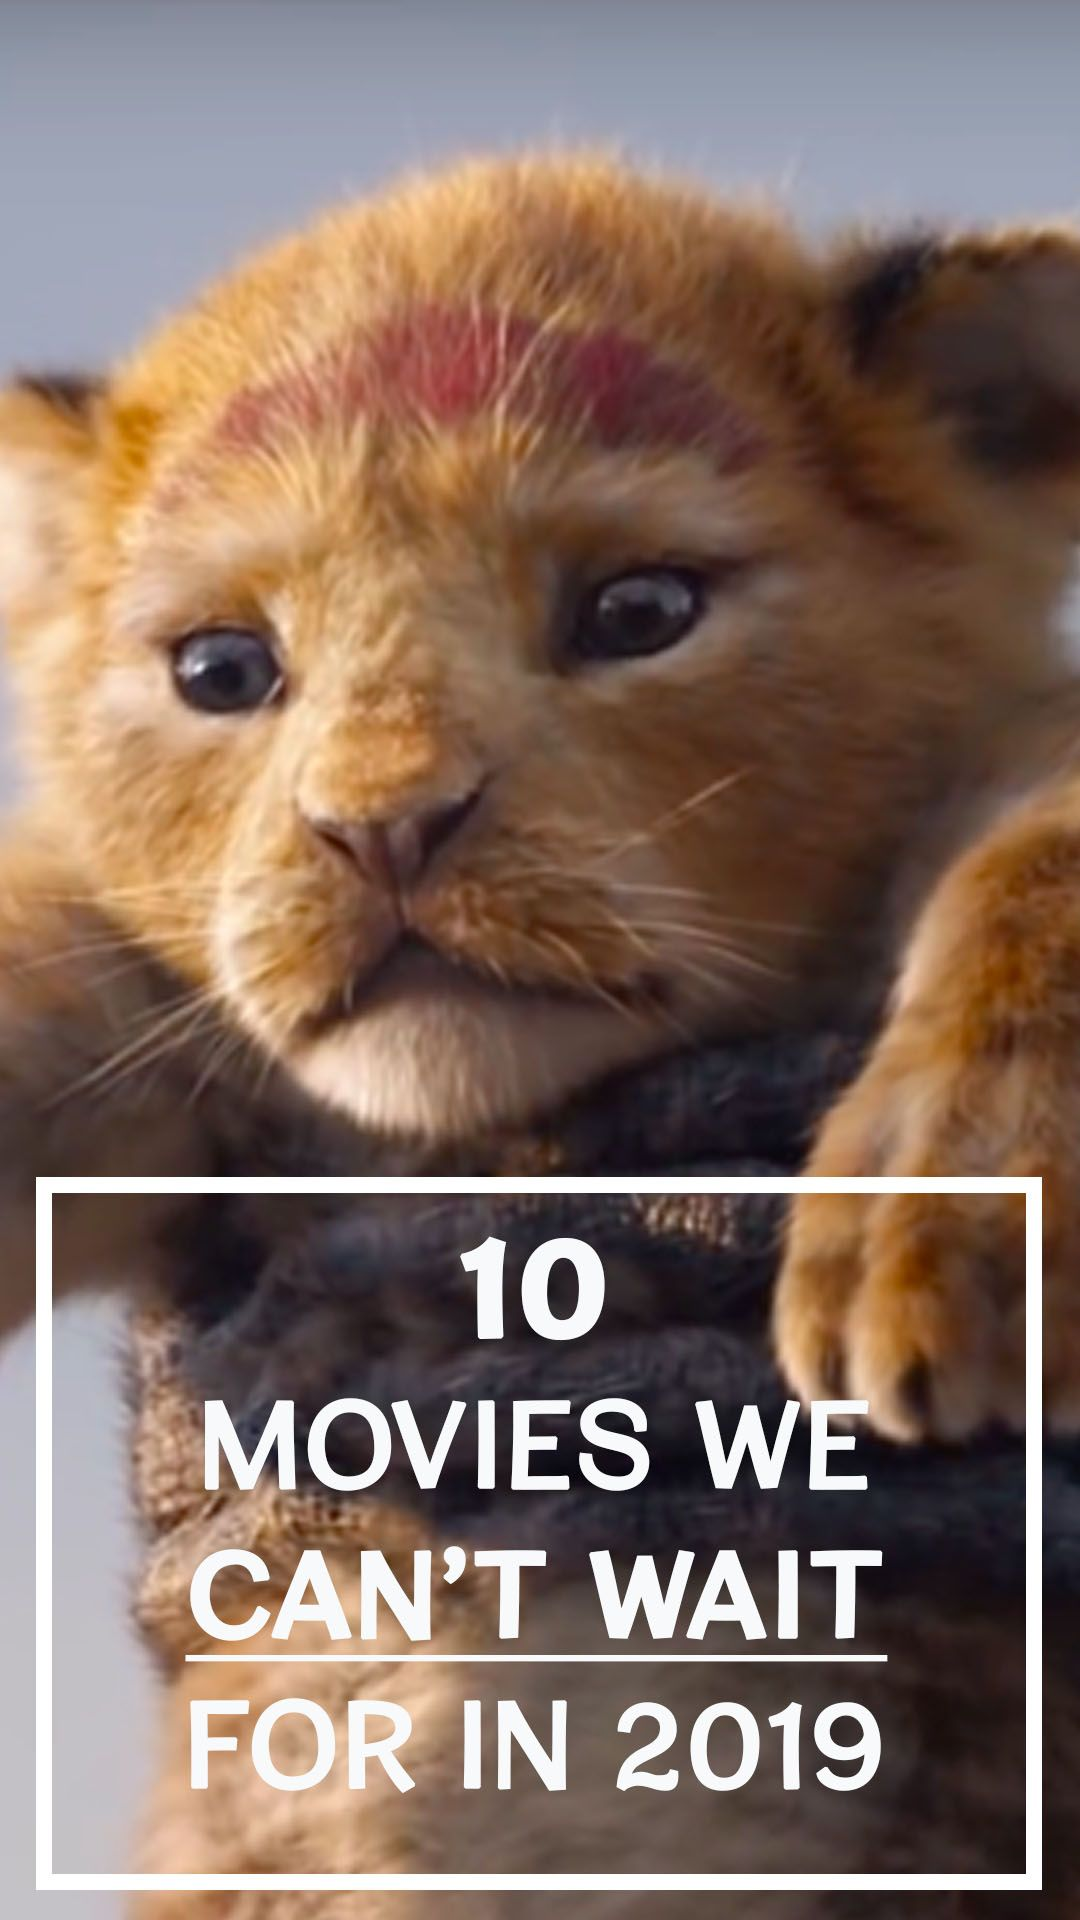 10 movies we can't wait for in 2019 #epicmovie